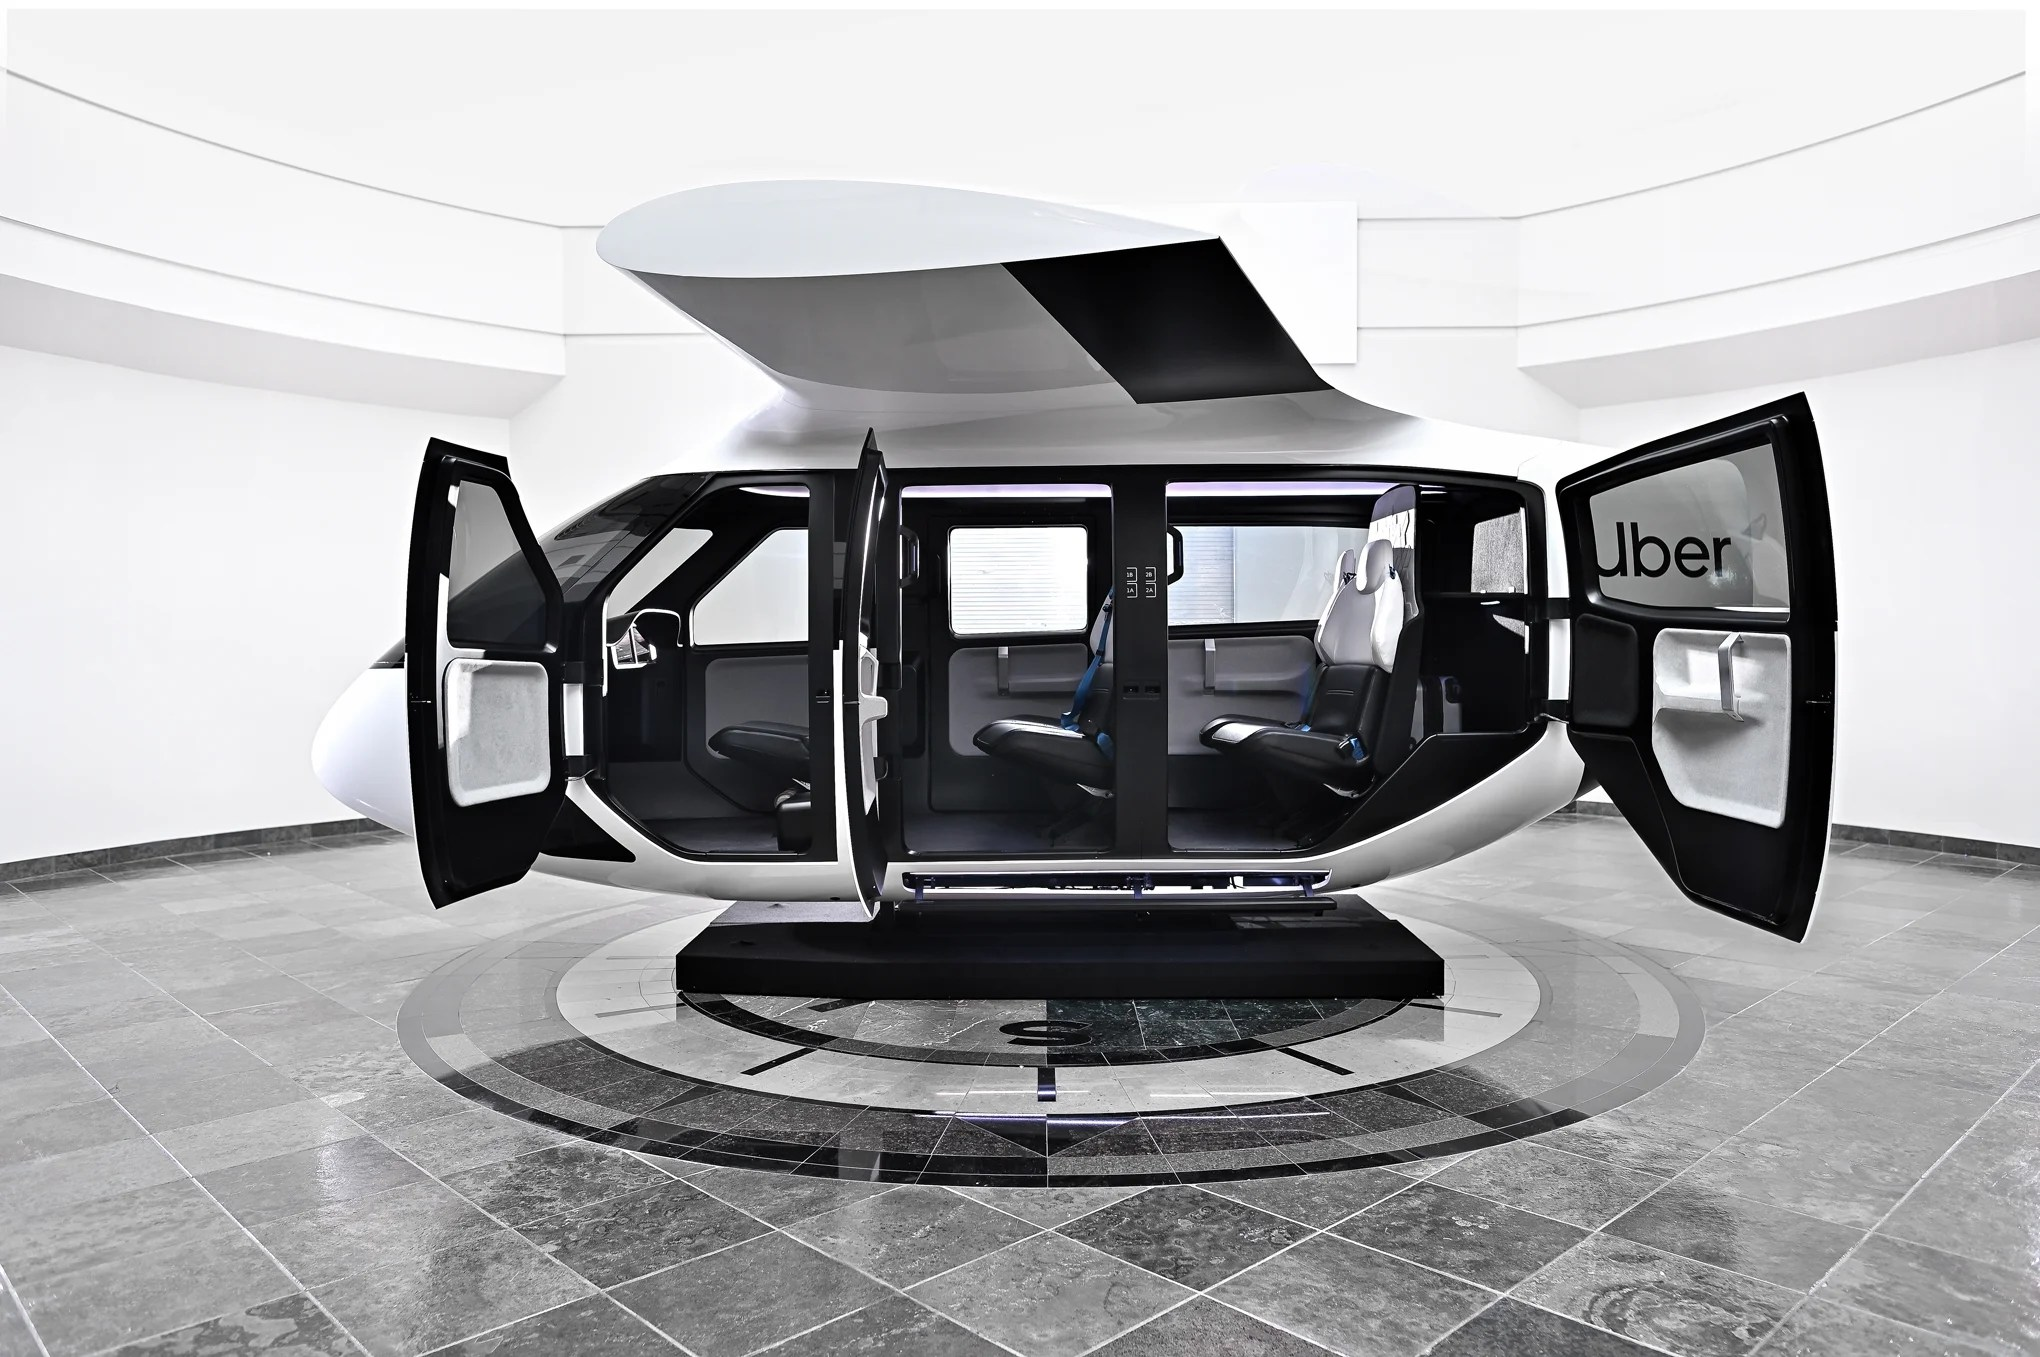 First Glimpse Inside Uber Airs Futuristic Flying Taxis Ahead Of Planned Commercial Launch In 2023 London Evening Standard